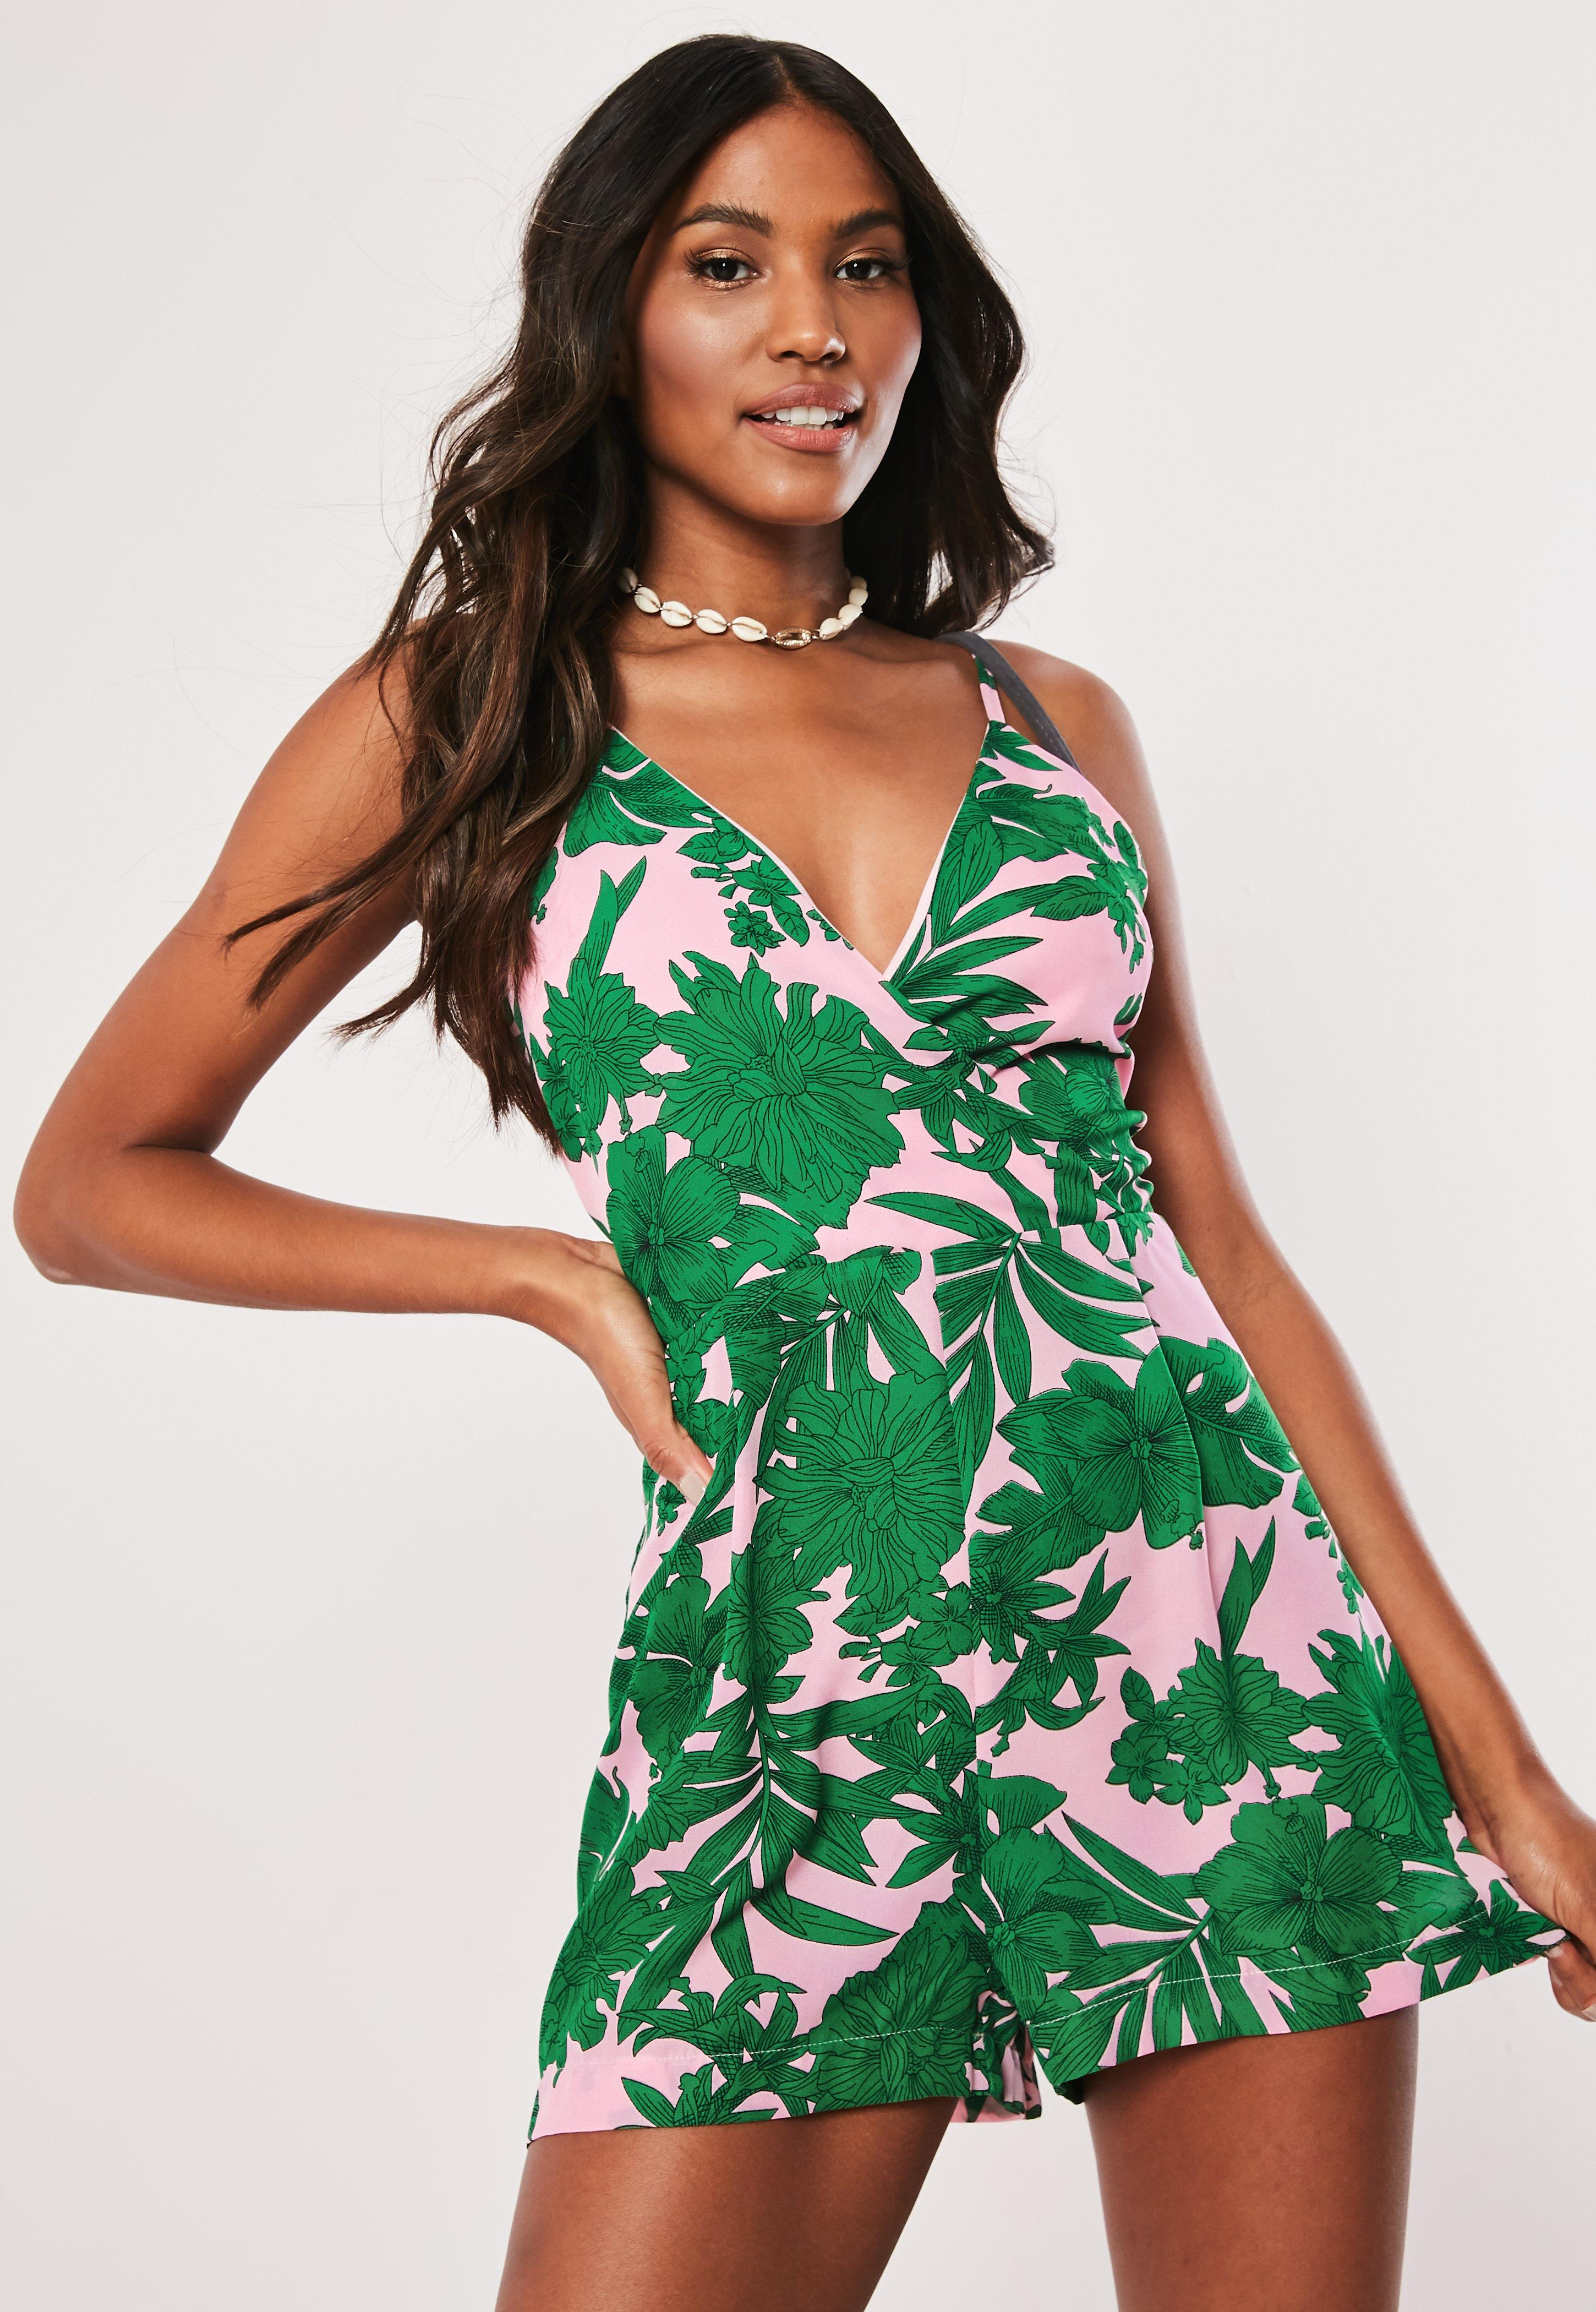 bffdef6a6f73 Rompers for Women - off the Shoulder Rompers 2019